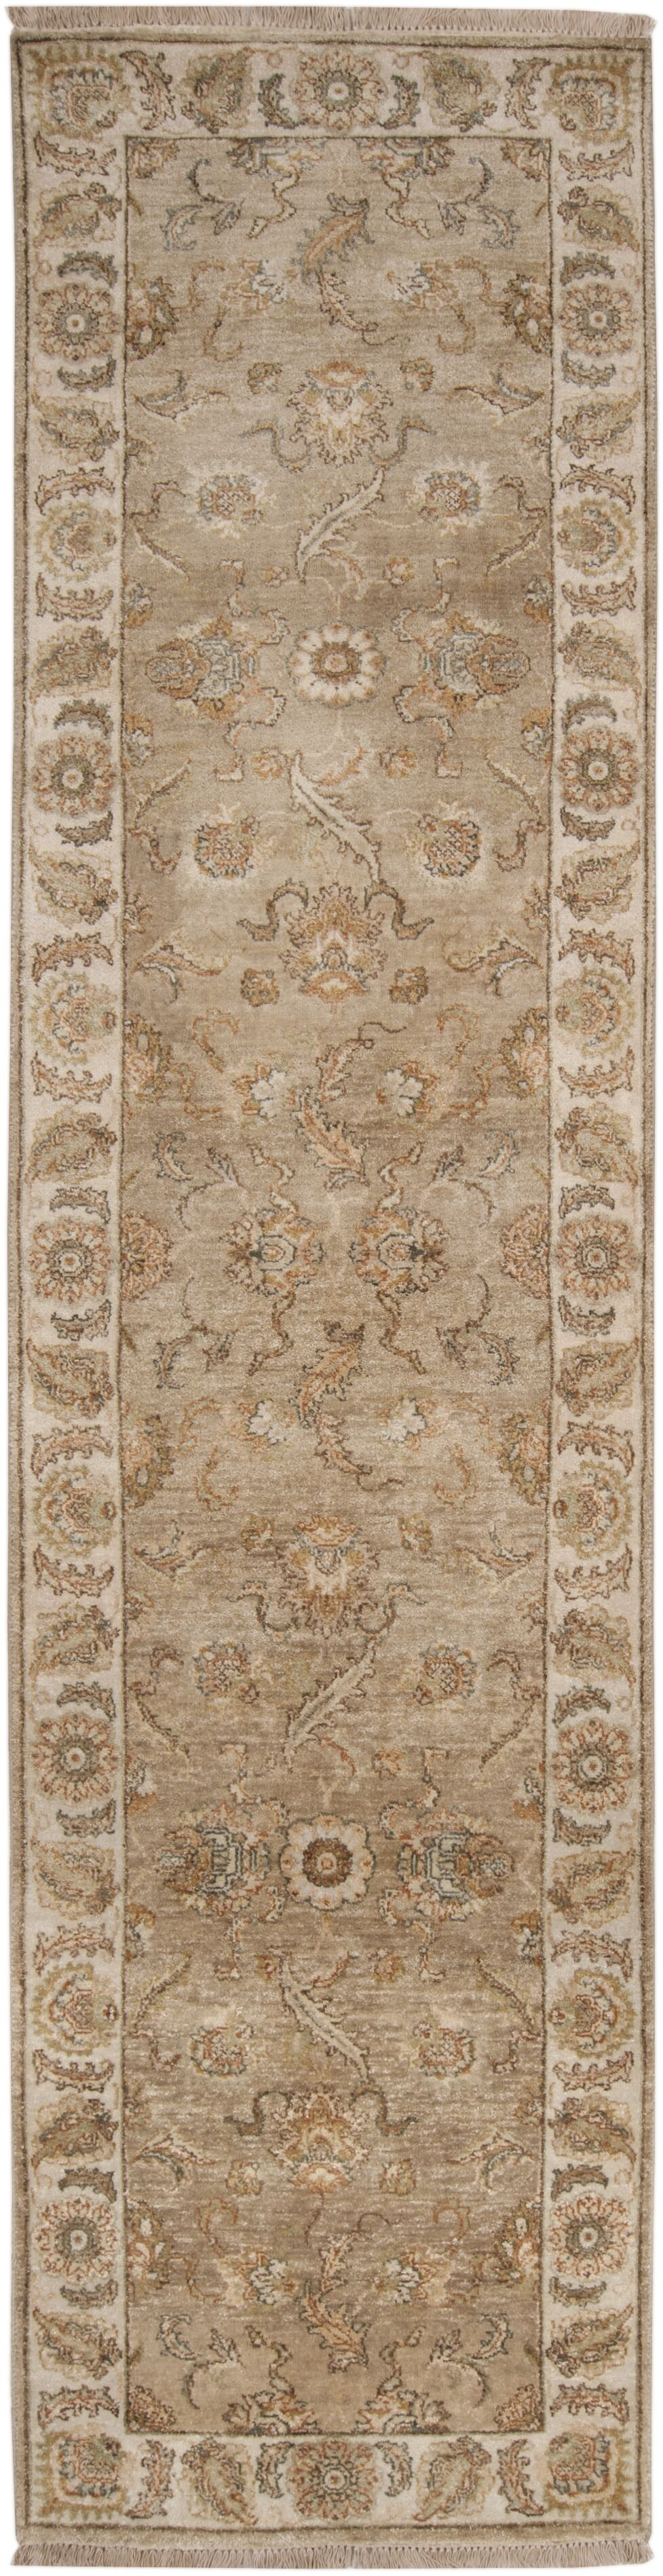 Harrell Hand-Knotted Brown Area Rug Rug Size: Rectangle 3'9